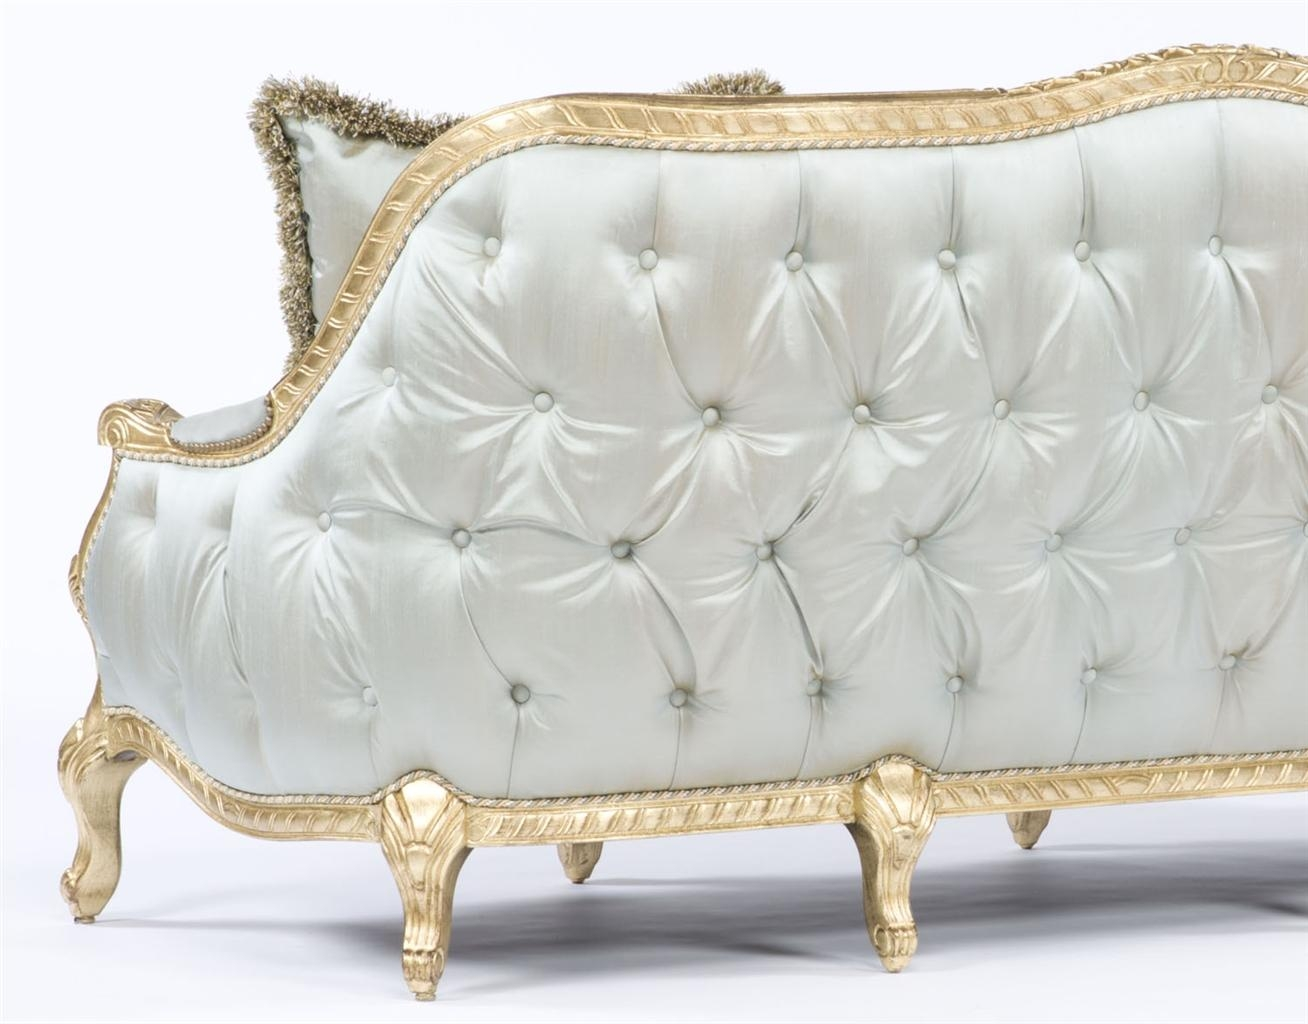 French Style Sofa. Tufted Luxury Furniture (Image 8 of 20)